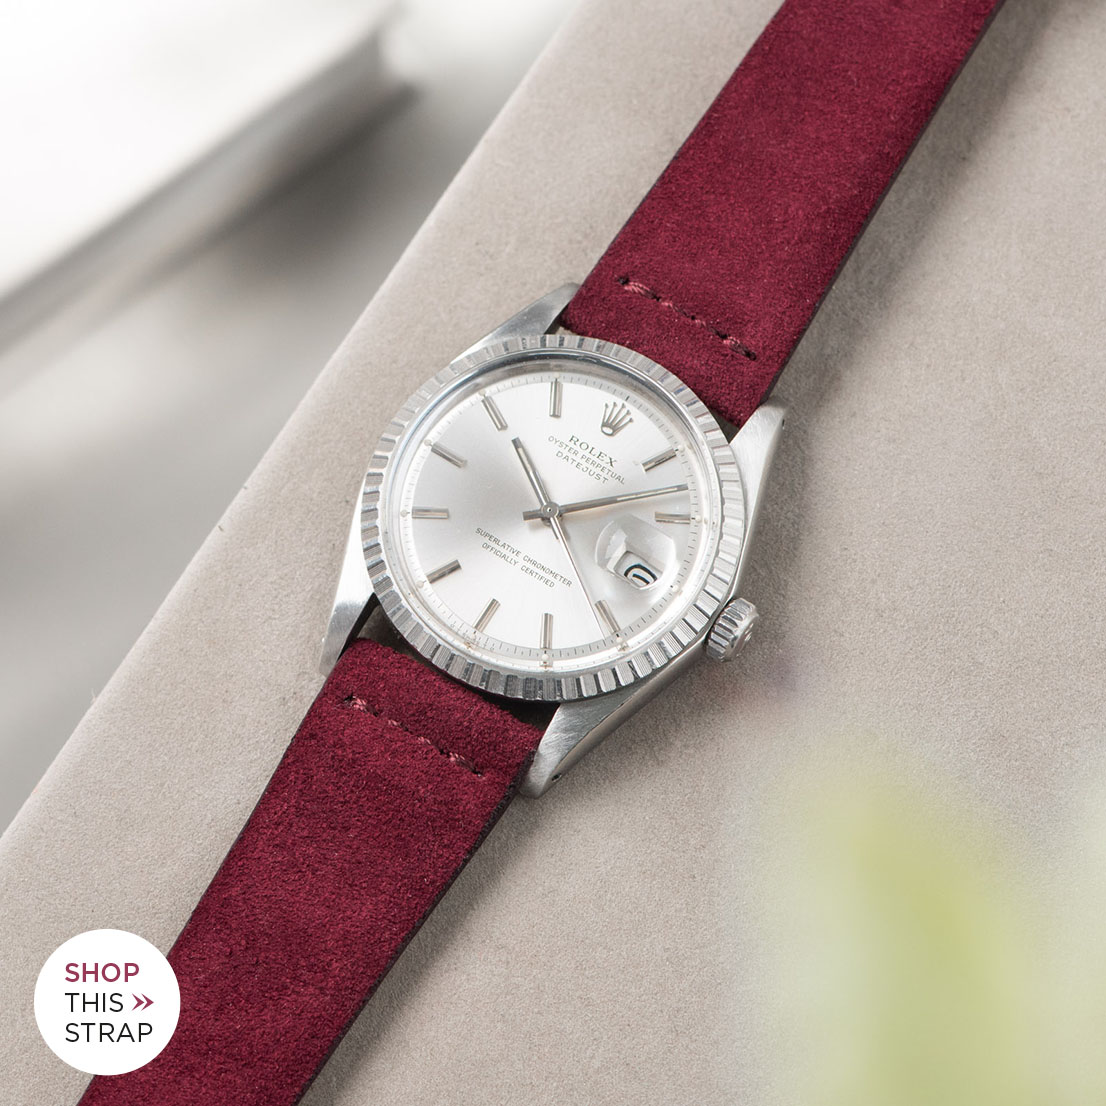 Bulang and sons_Strap Guide_Rolex Datejust Silverdial 1601 1603 1600 1630_BURGUNDY RED SILKY SUEDE LEATHER WATCH STRAP